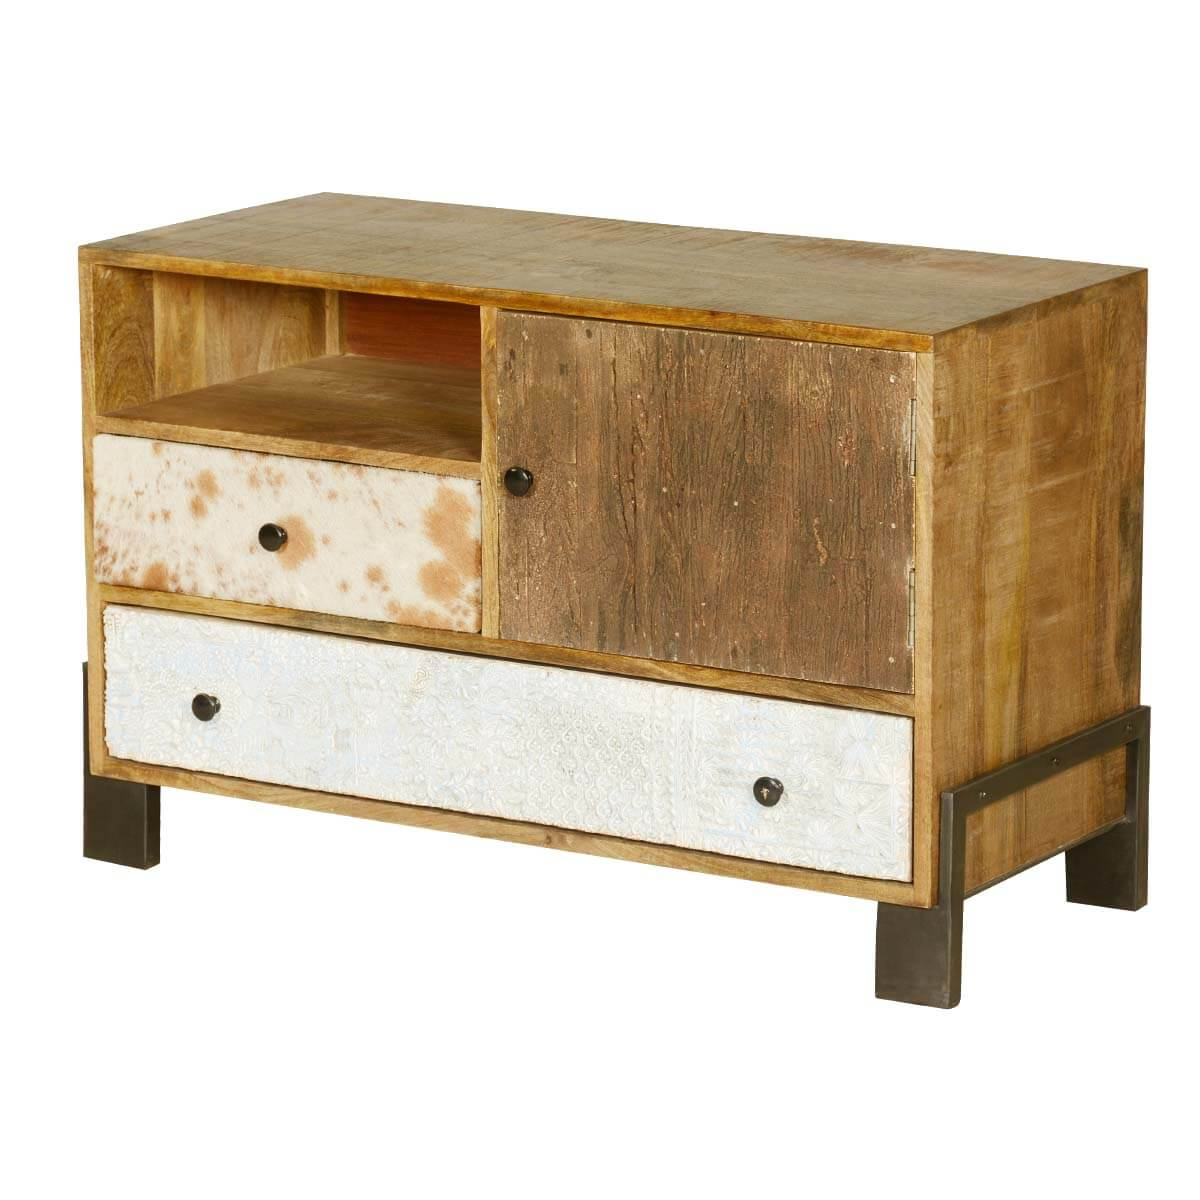 60's Retro Mango Wood & Iron 4 Compartment Chest w Drawers